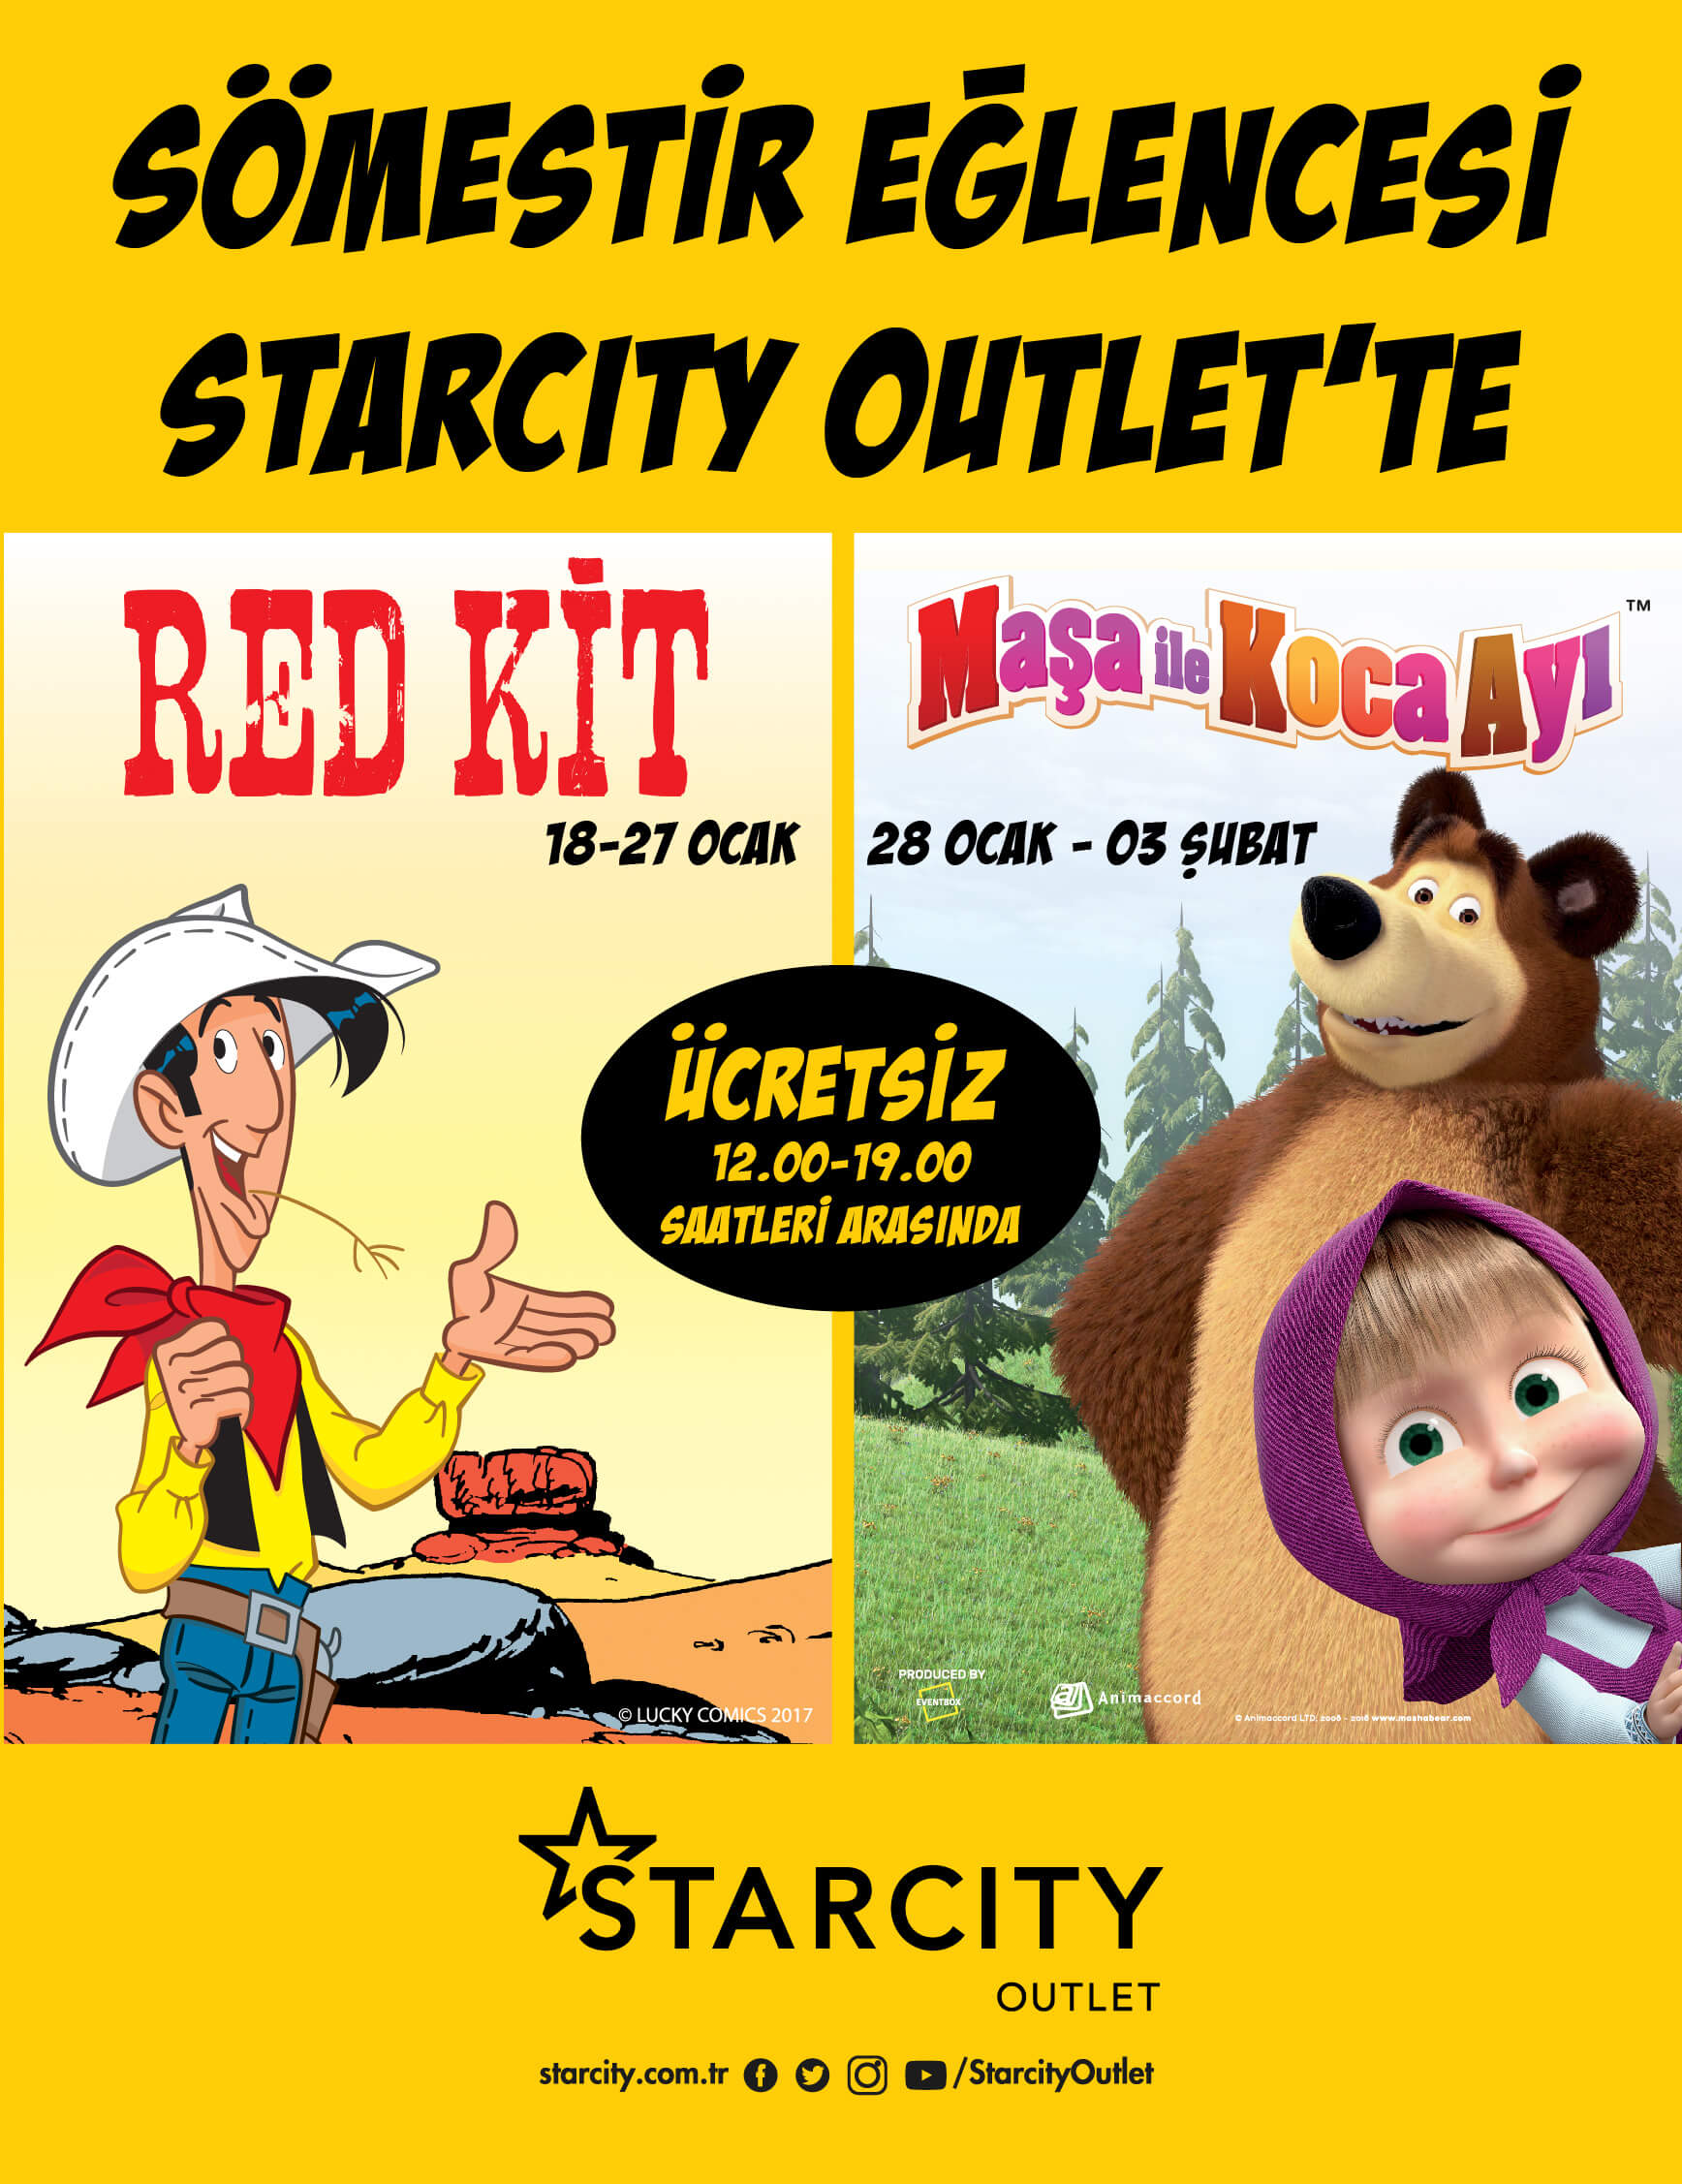 Red Kit ve Maşa İle Koca Ayı Starcity Outlet'te!